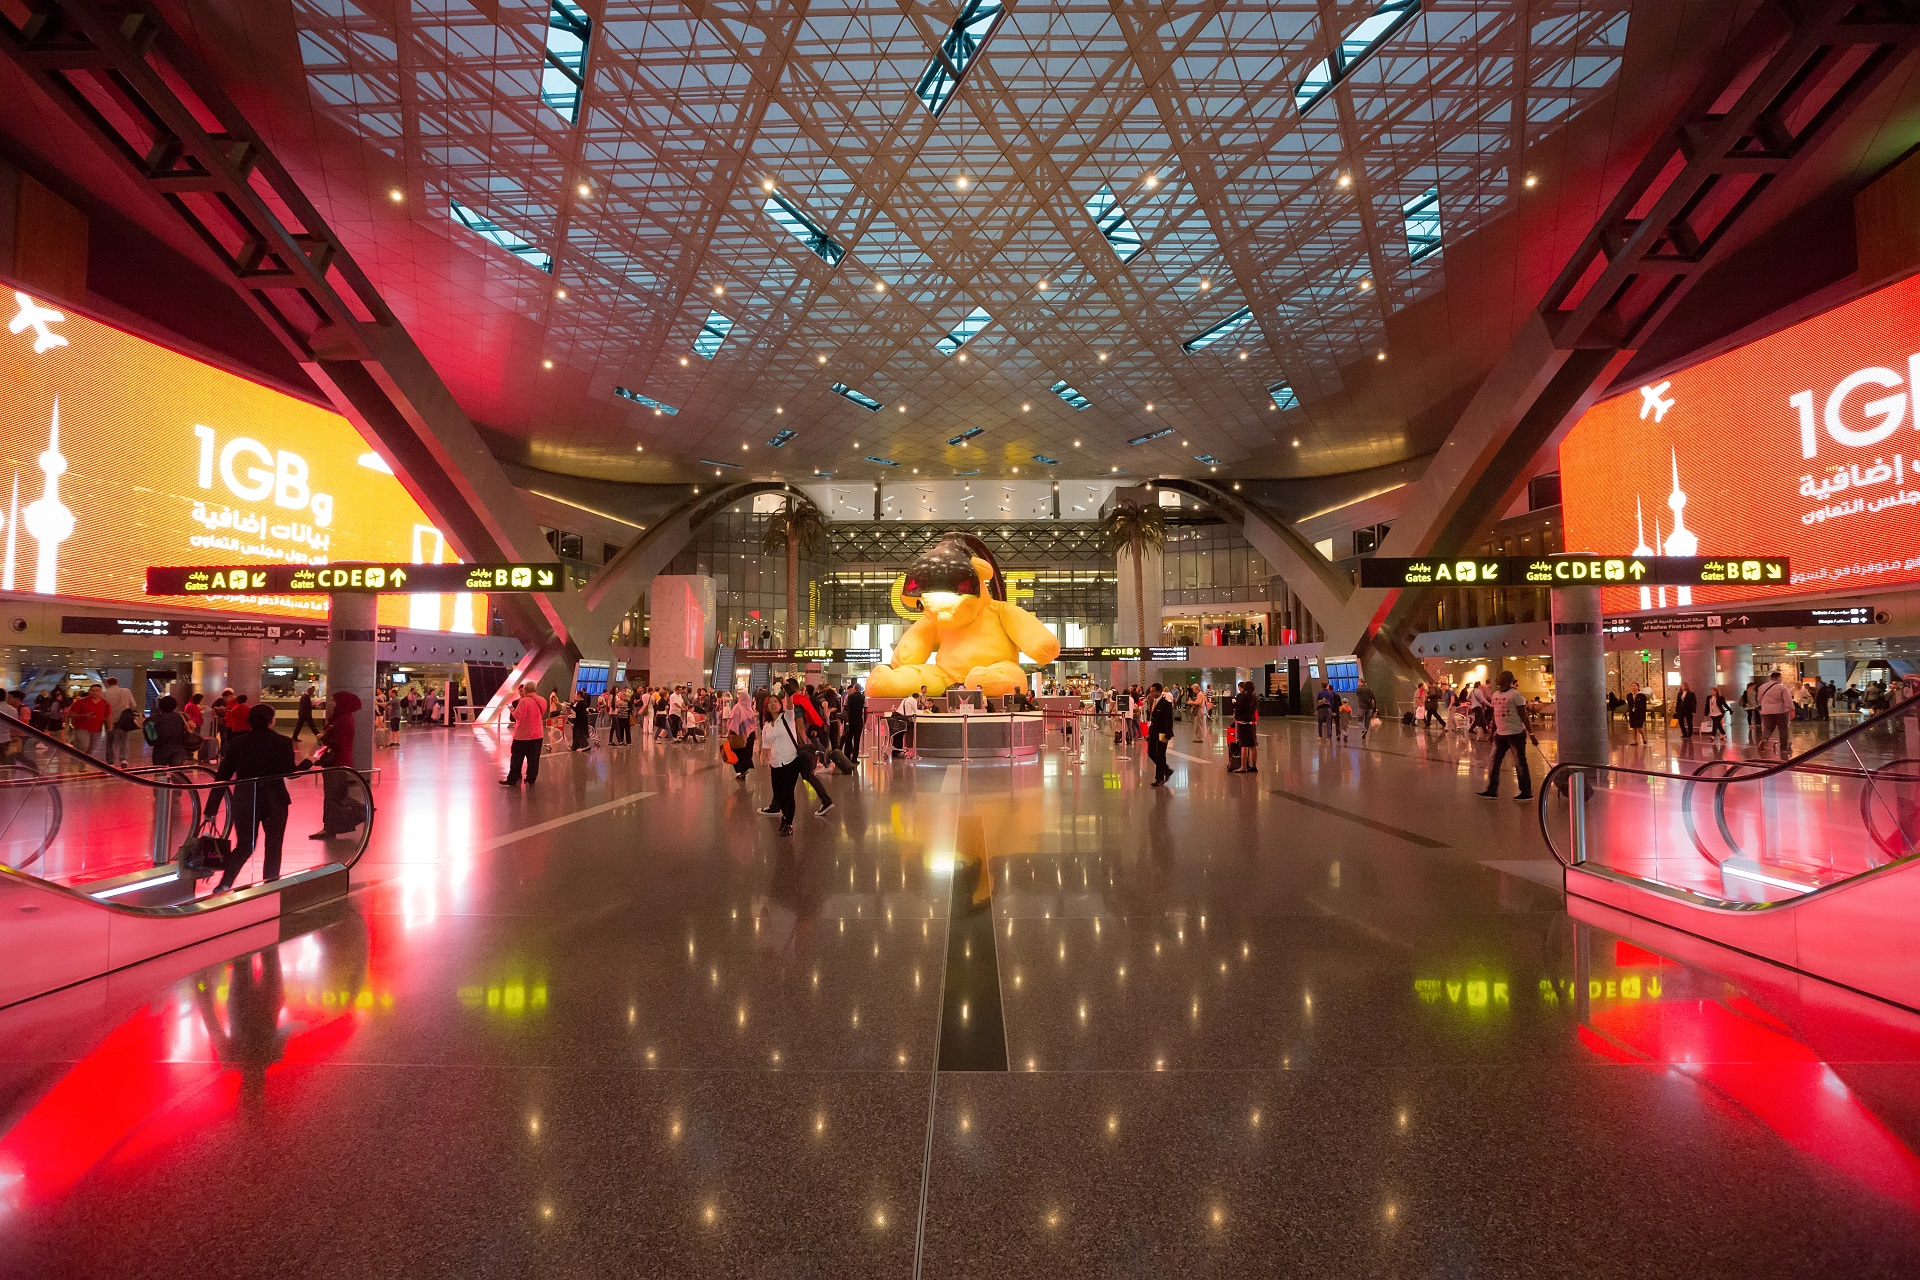 Hamad International Airport in Doha, Katar_EDITORIAL ONLY_Oleg GawriloFF/Shutterstock.com